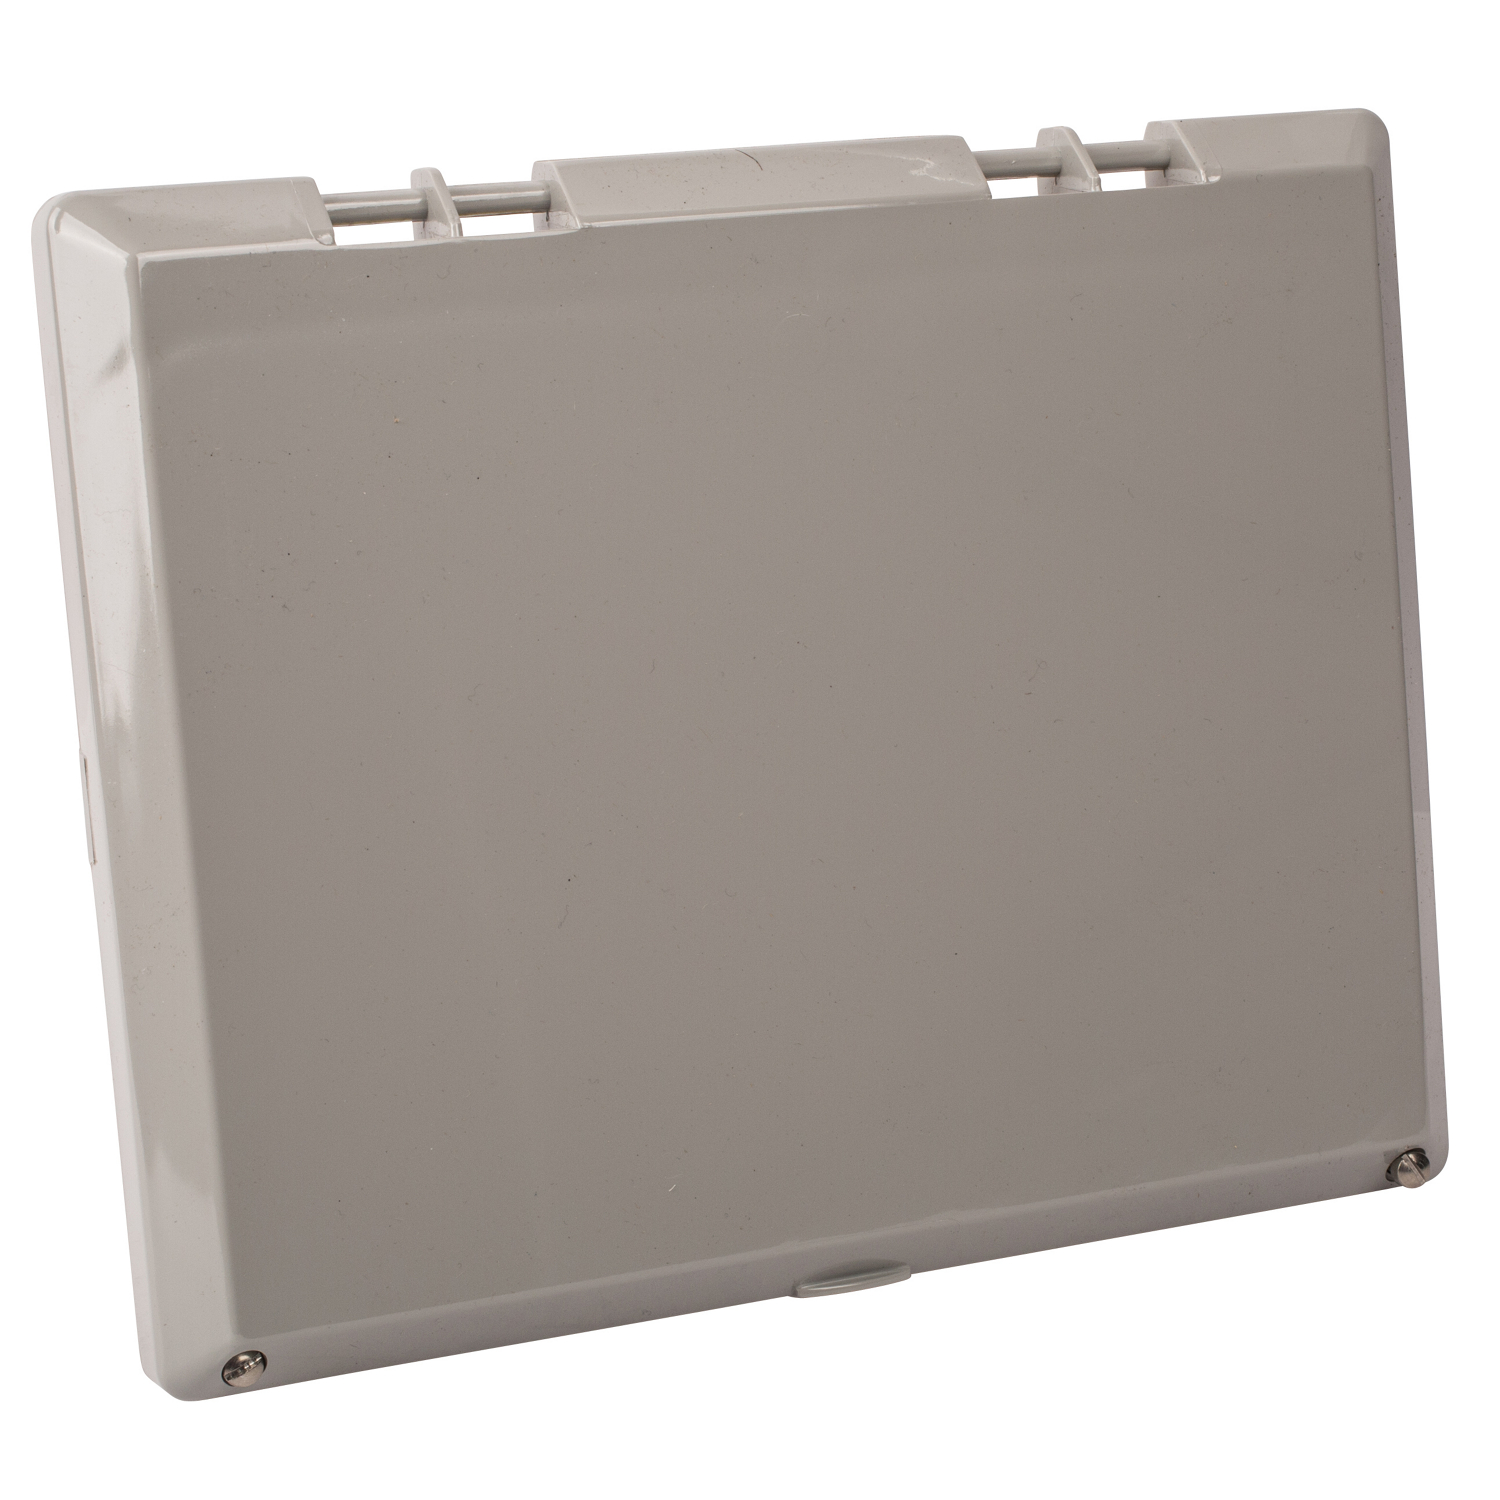 NH1010L CAR-ELE 10X10 N12 HDN HNG LID-OPAQUE